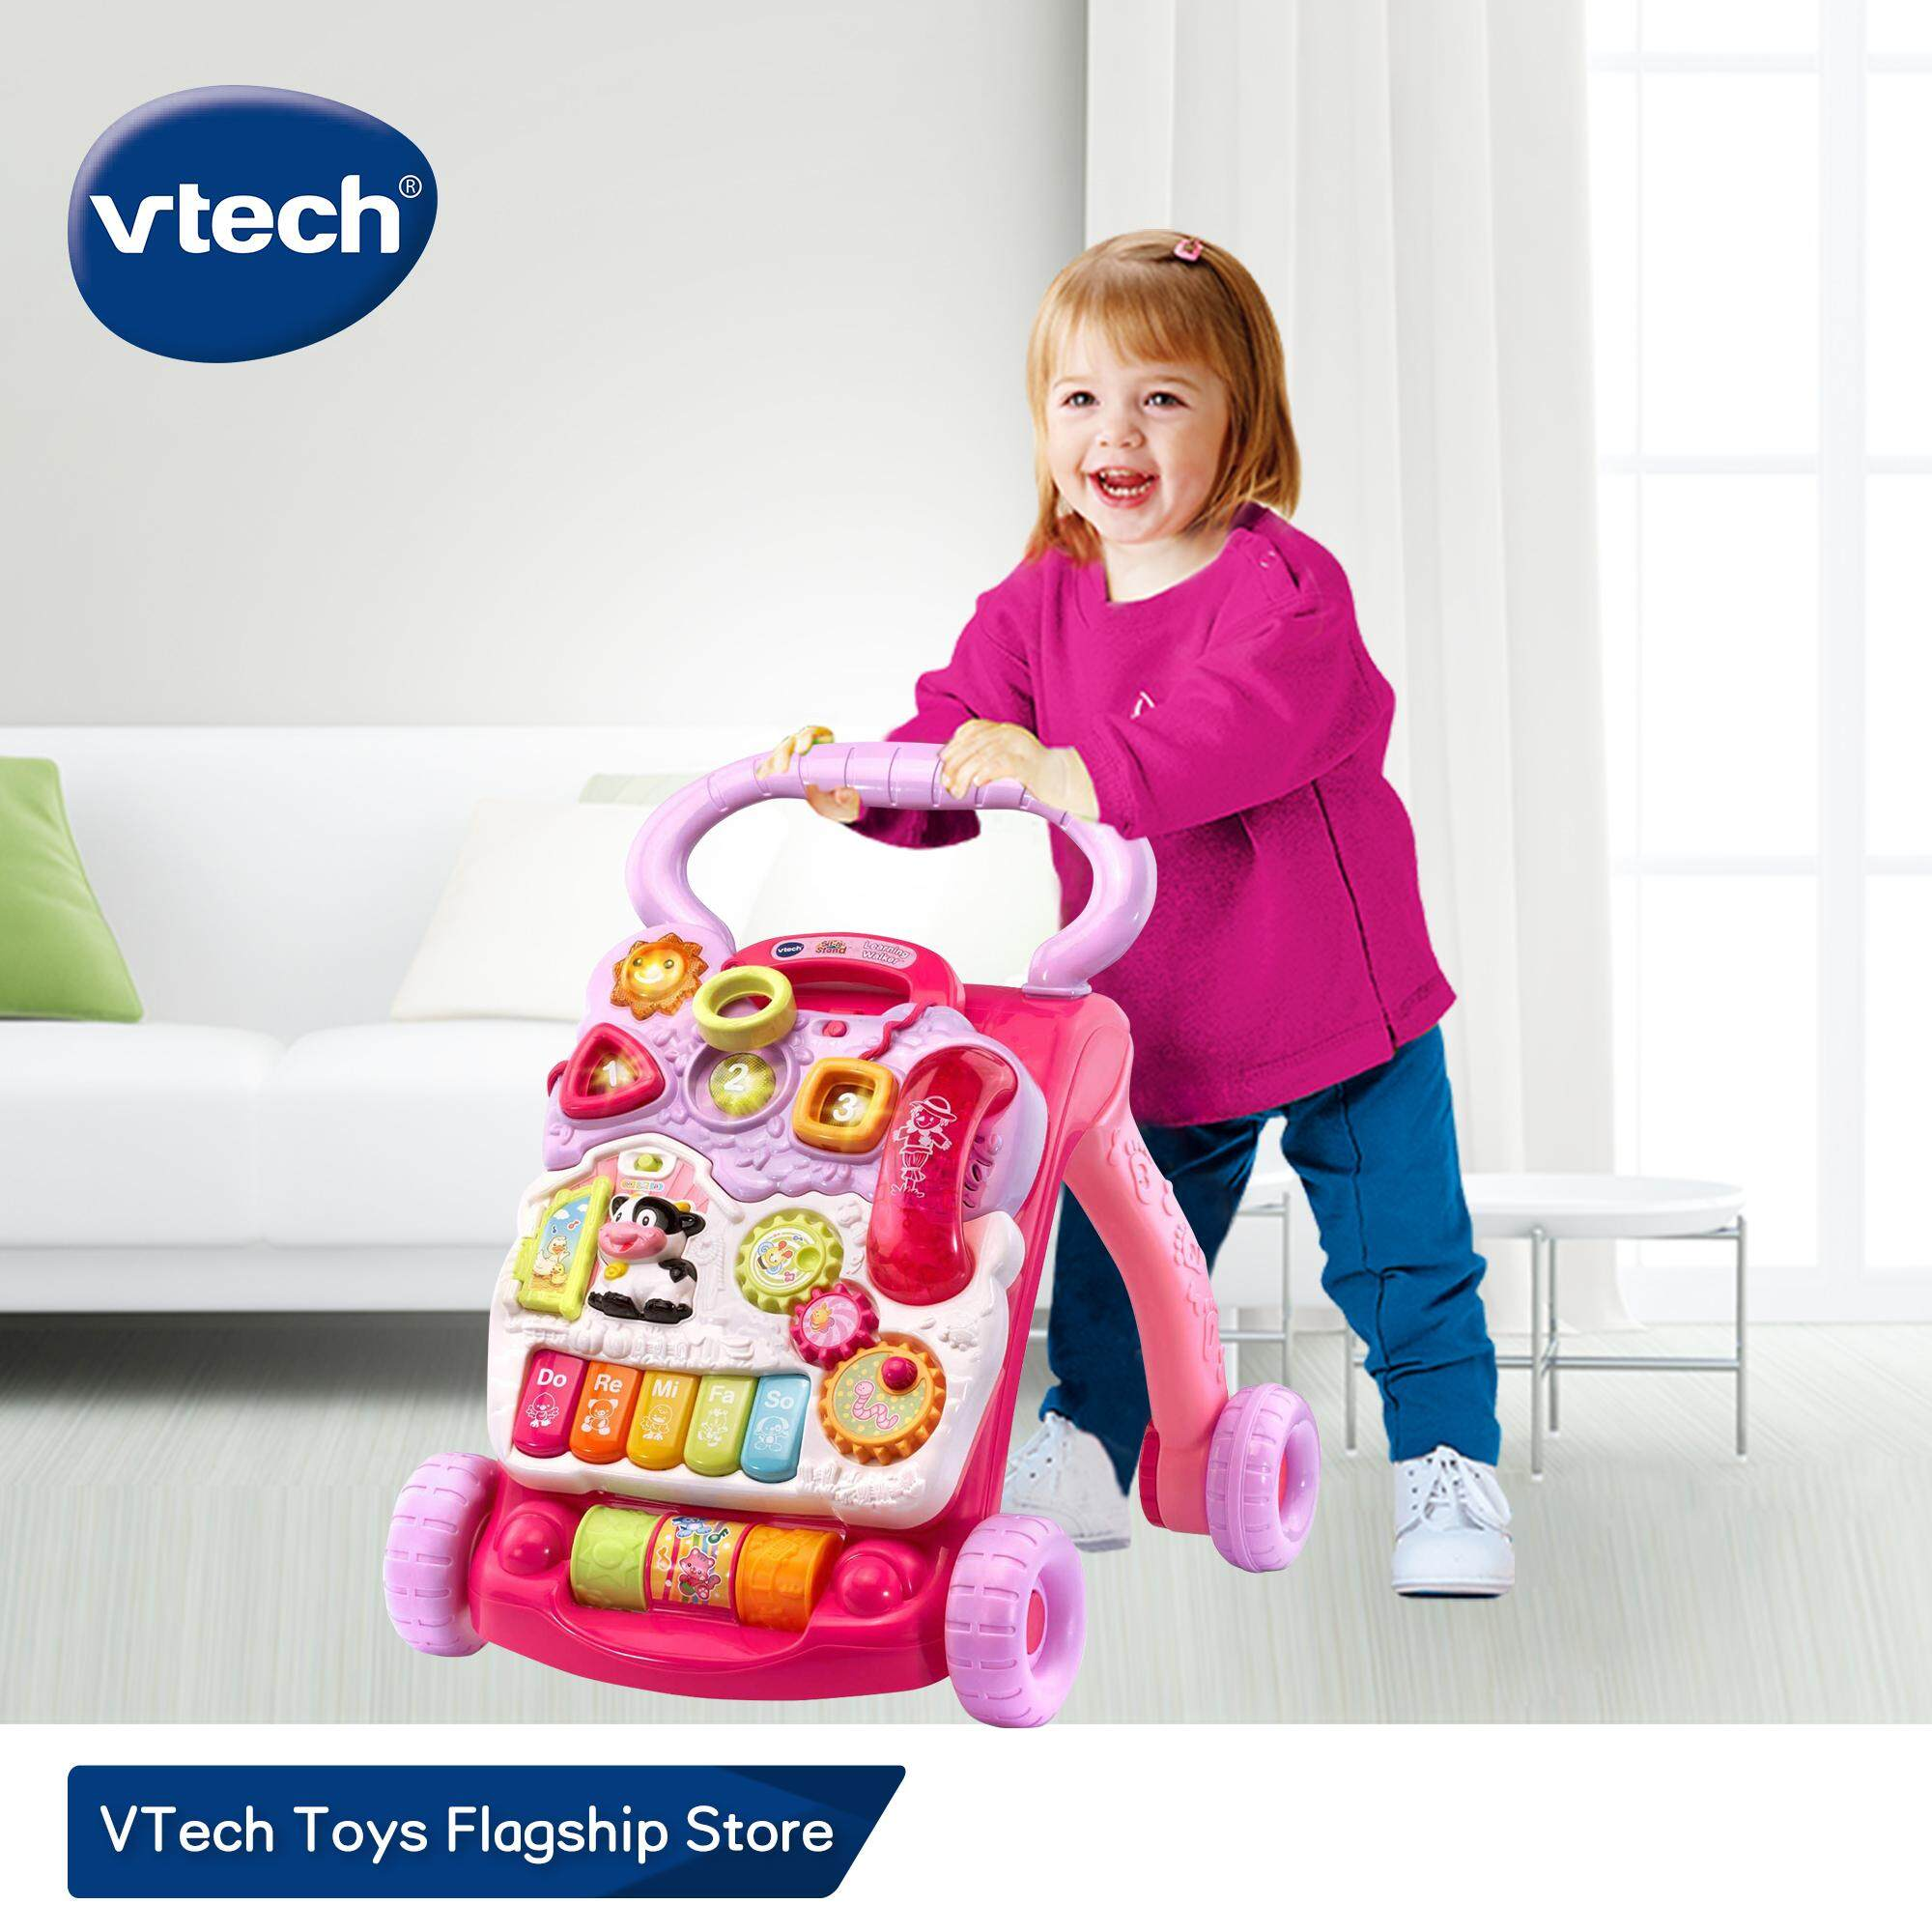 VTech Pink Color Baby Walker【US & Europe #1】with Speed Control, Music, Educational Learning SIt-to-Stand Learning Walker Toys for 9 - 36 Months Baby Infant Toys 1 years